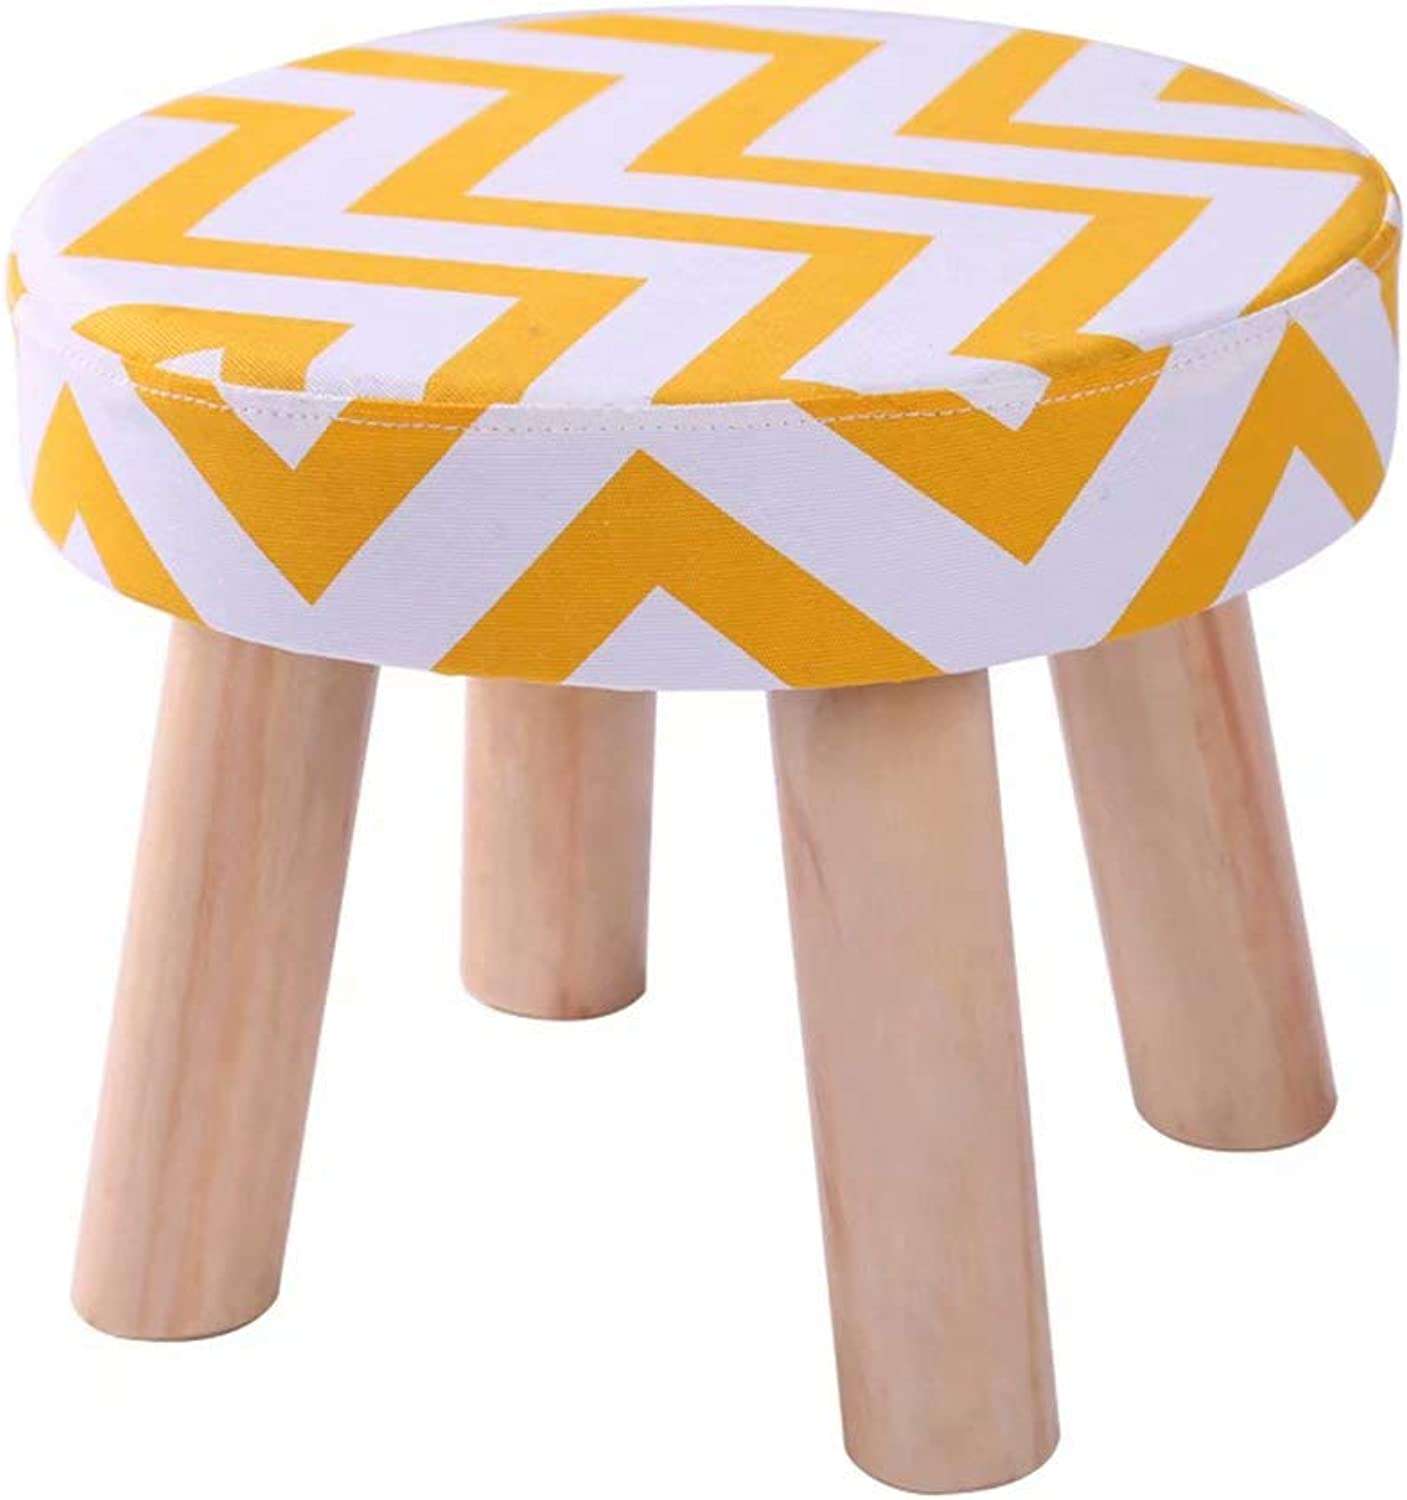 Small Stool Solid Wood Fabric Stool Sofa Stool Home Change shoes wear shoes Bench sedentary not deformable Washable 4 Legs